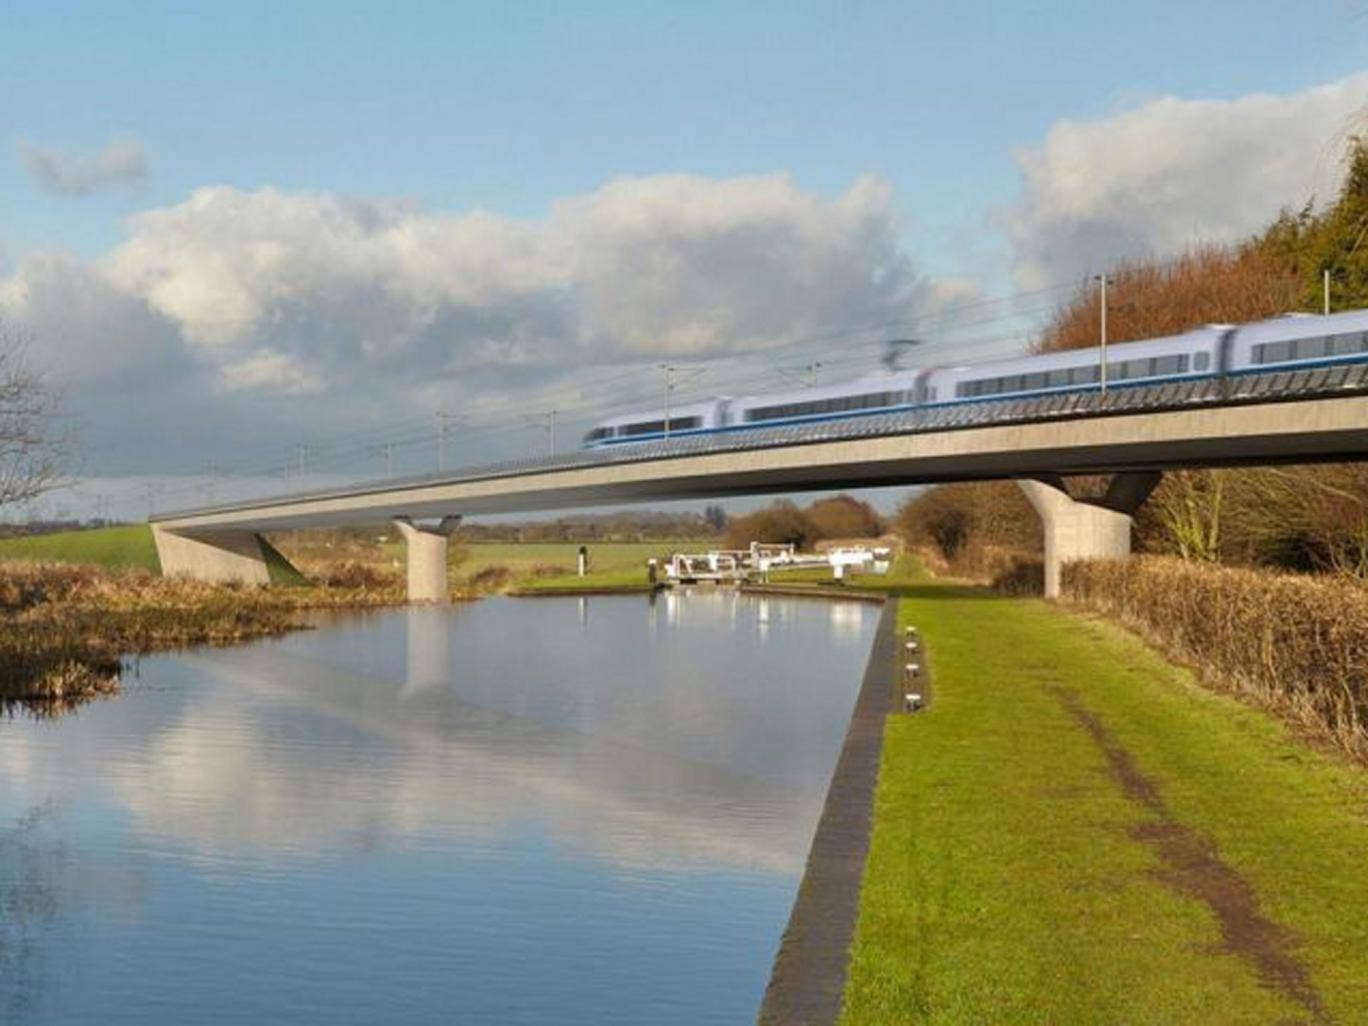 Image issued by HS2 of the Birmingham and Fazeley viaduct, part of the new proposed route for the HS2 high speed rail scheme